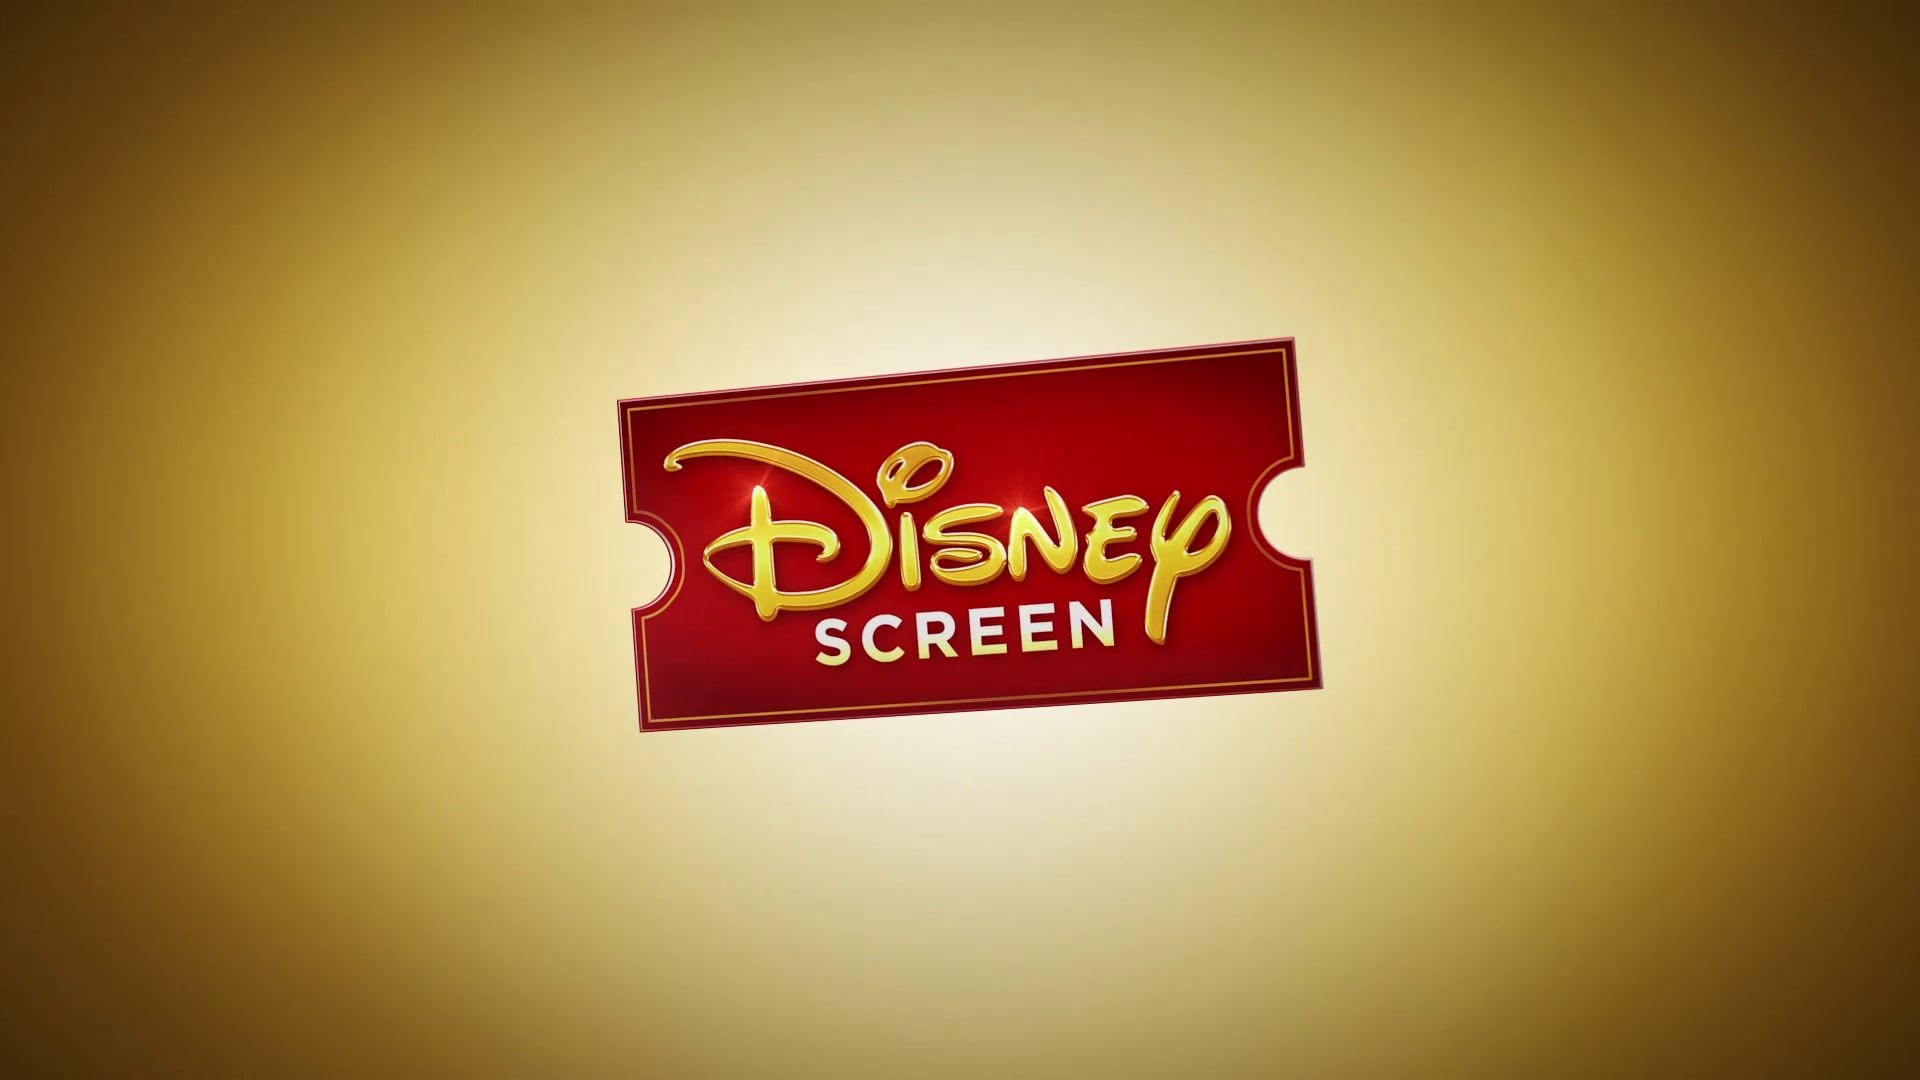 Disney Screen Trailer